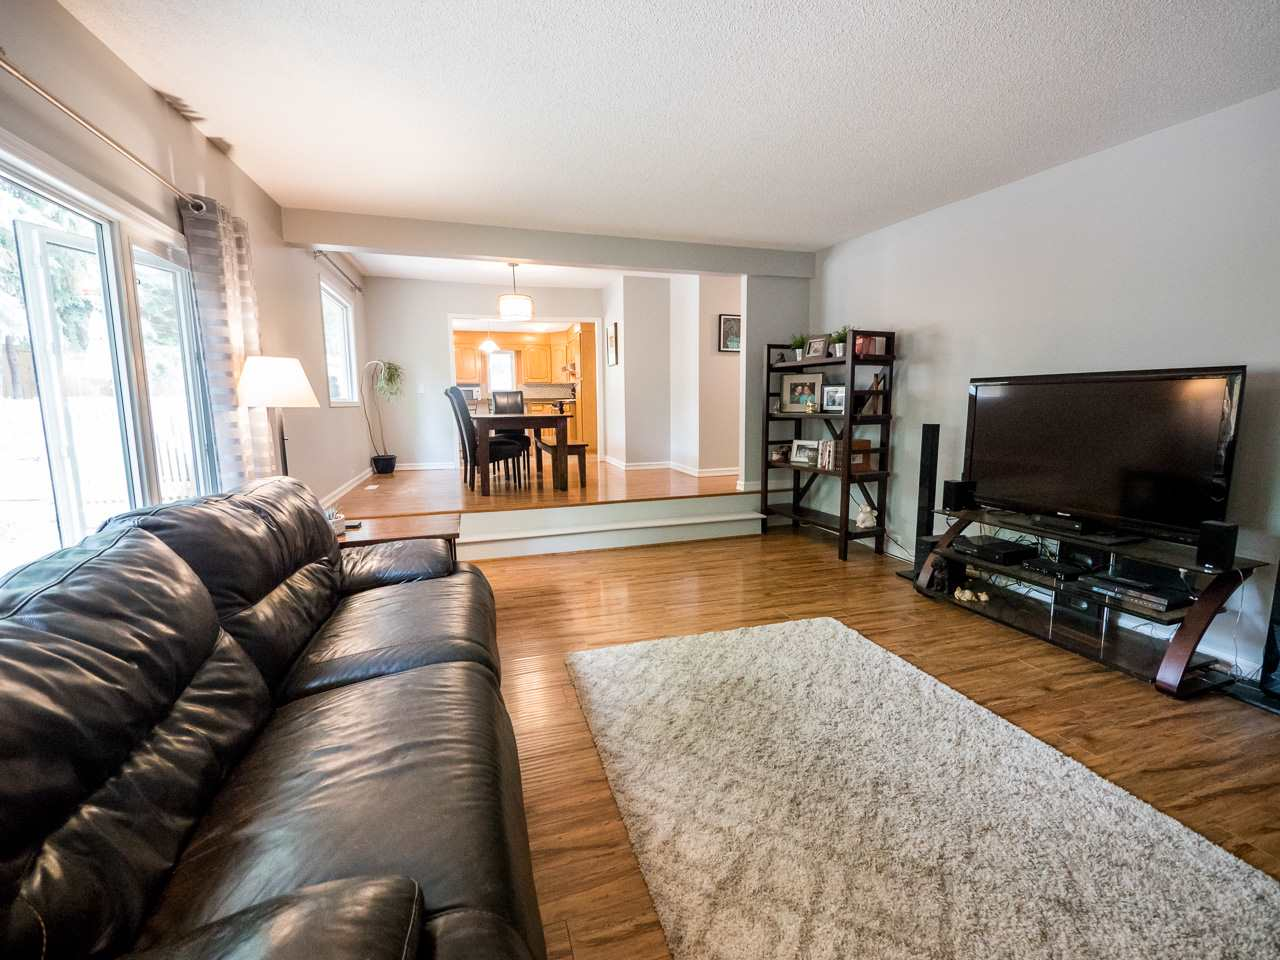 Photo 7: 13 GREYSTONE Place: St. Albert House for sale : MLS(r) # E4069777